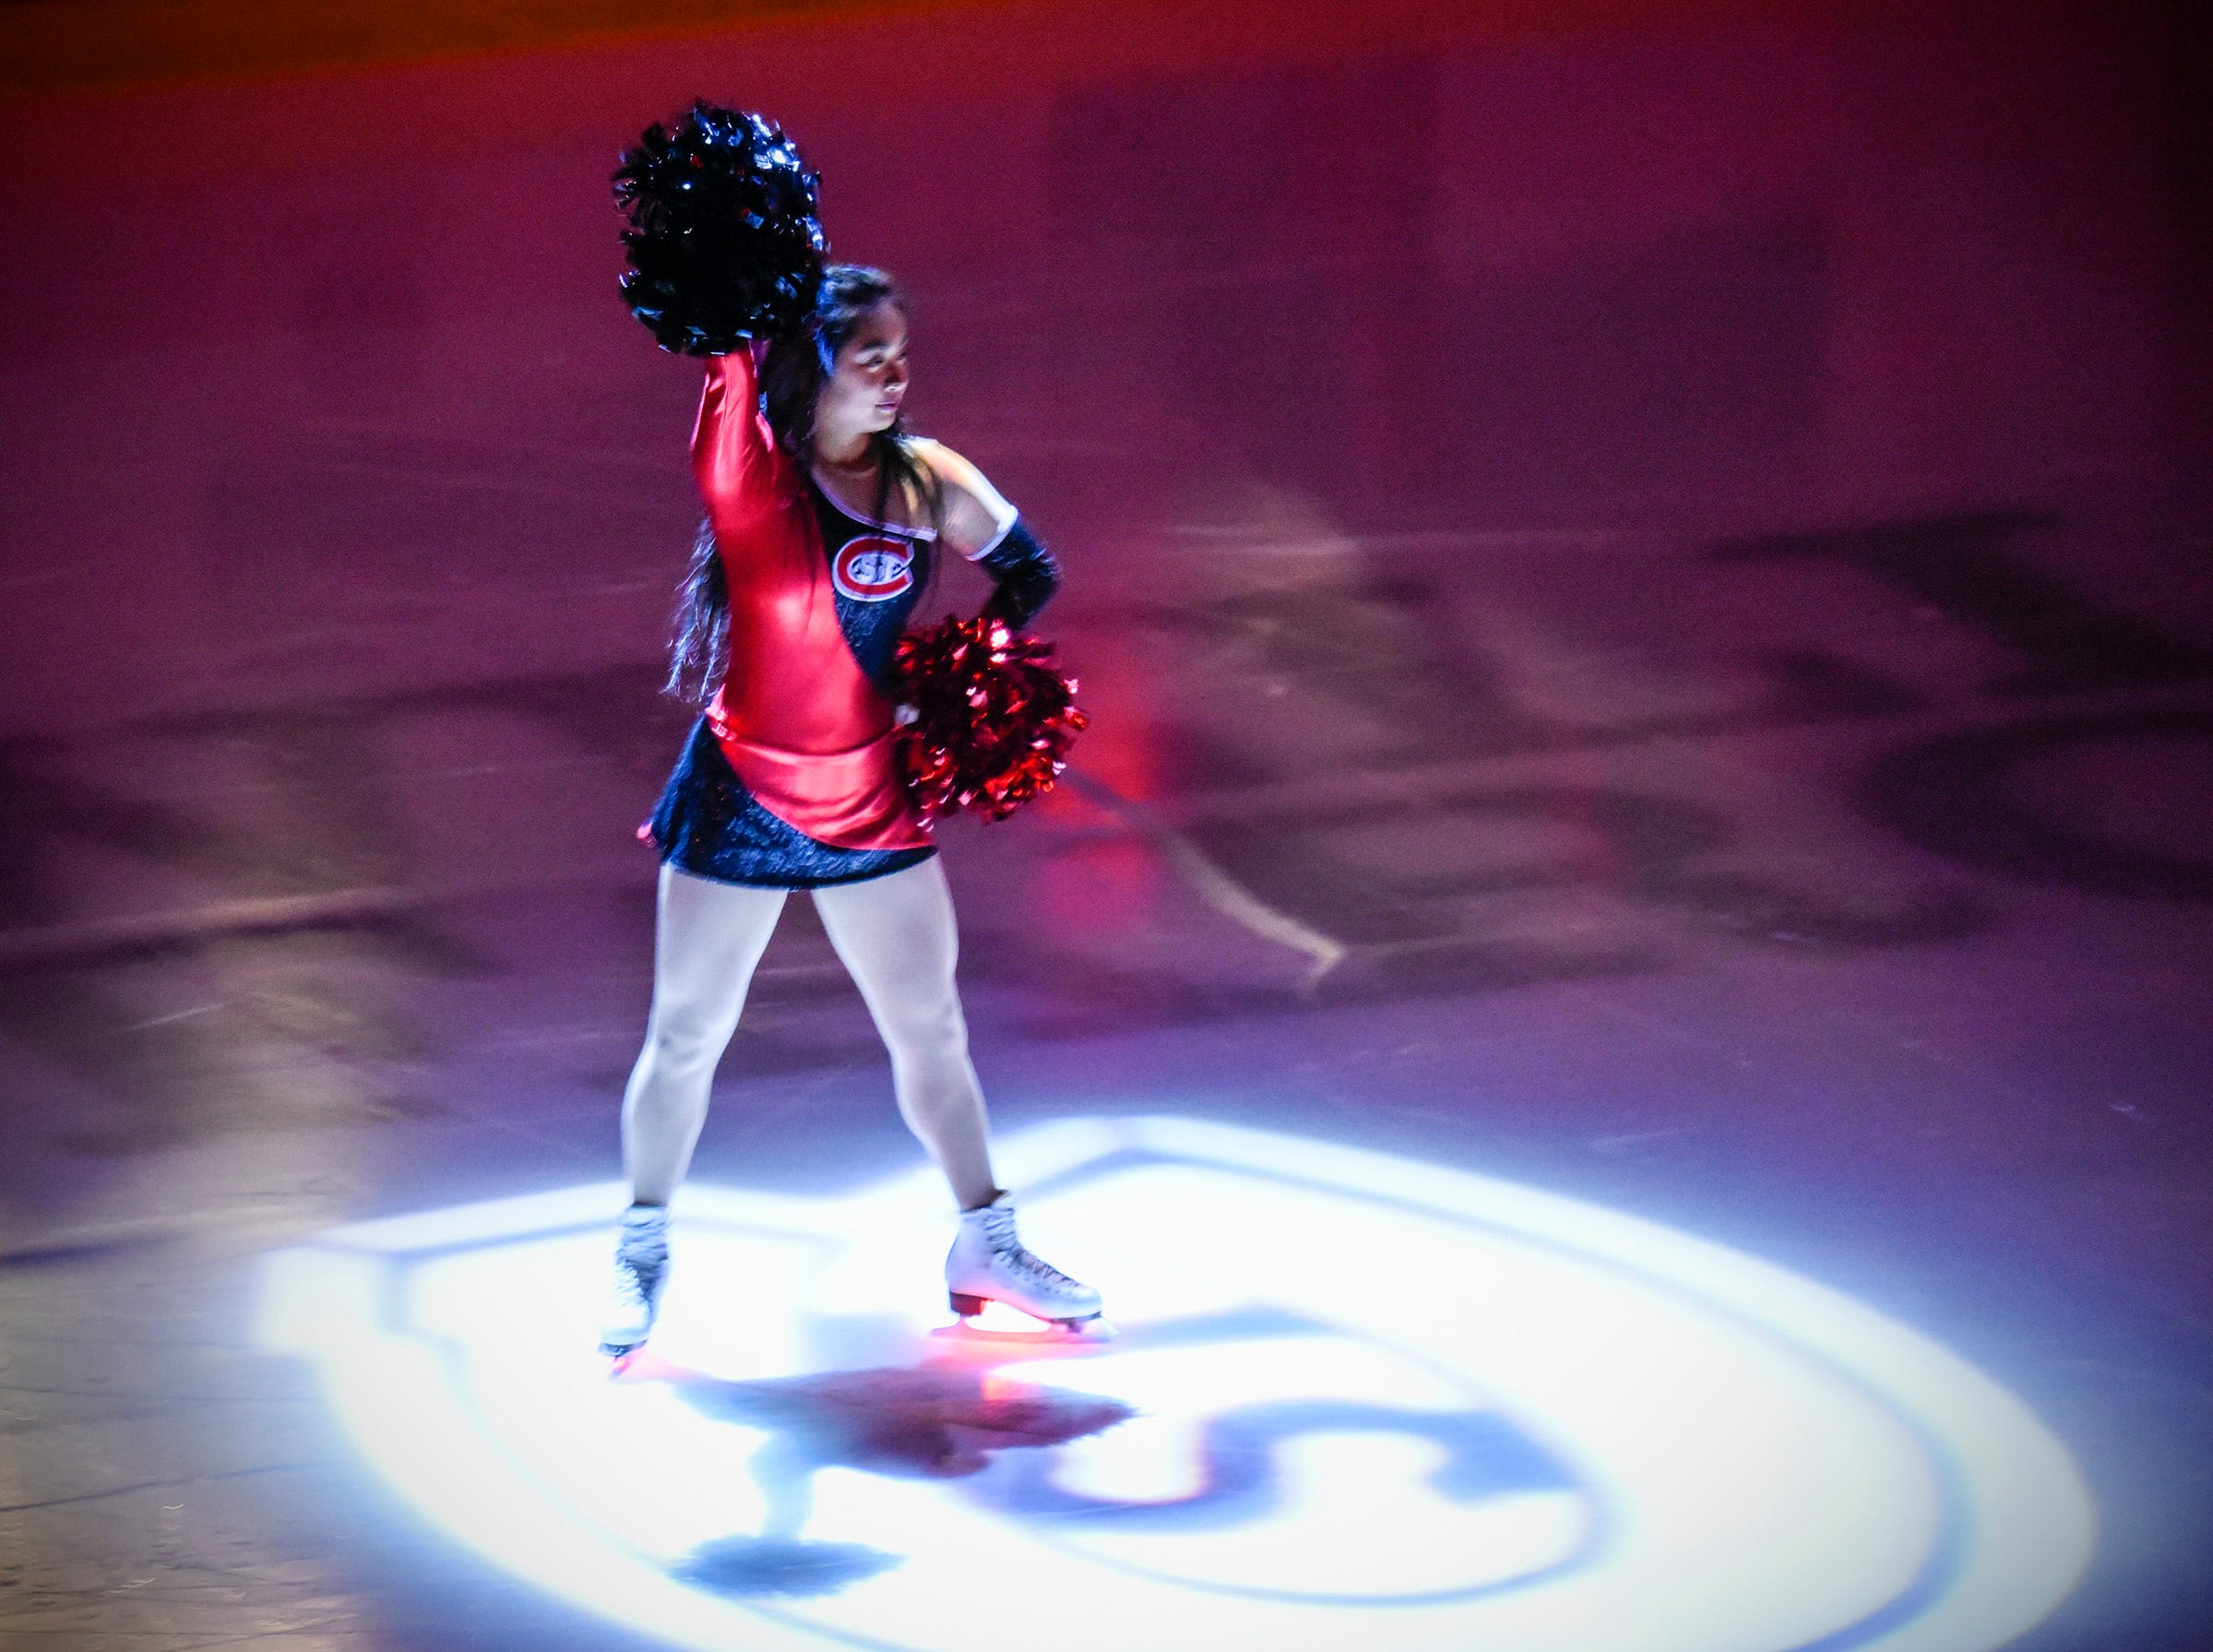 St. Cloud State University cheerleaders entertain the fans before the start of the game against the University of Nebraska-Omaha Friday, Dec. 7, at the Herb Brooks National Hockey Center.